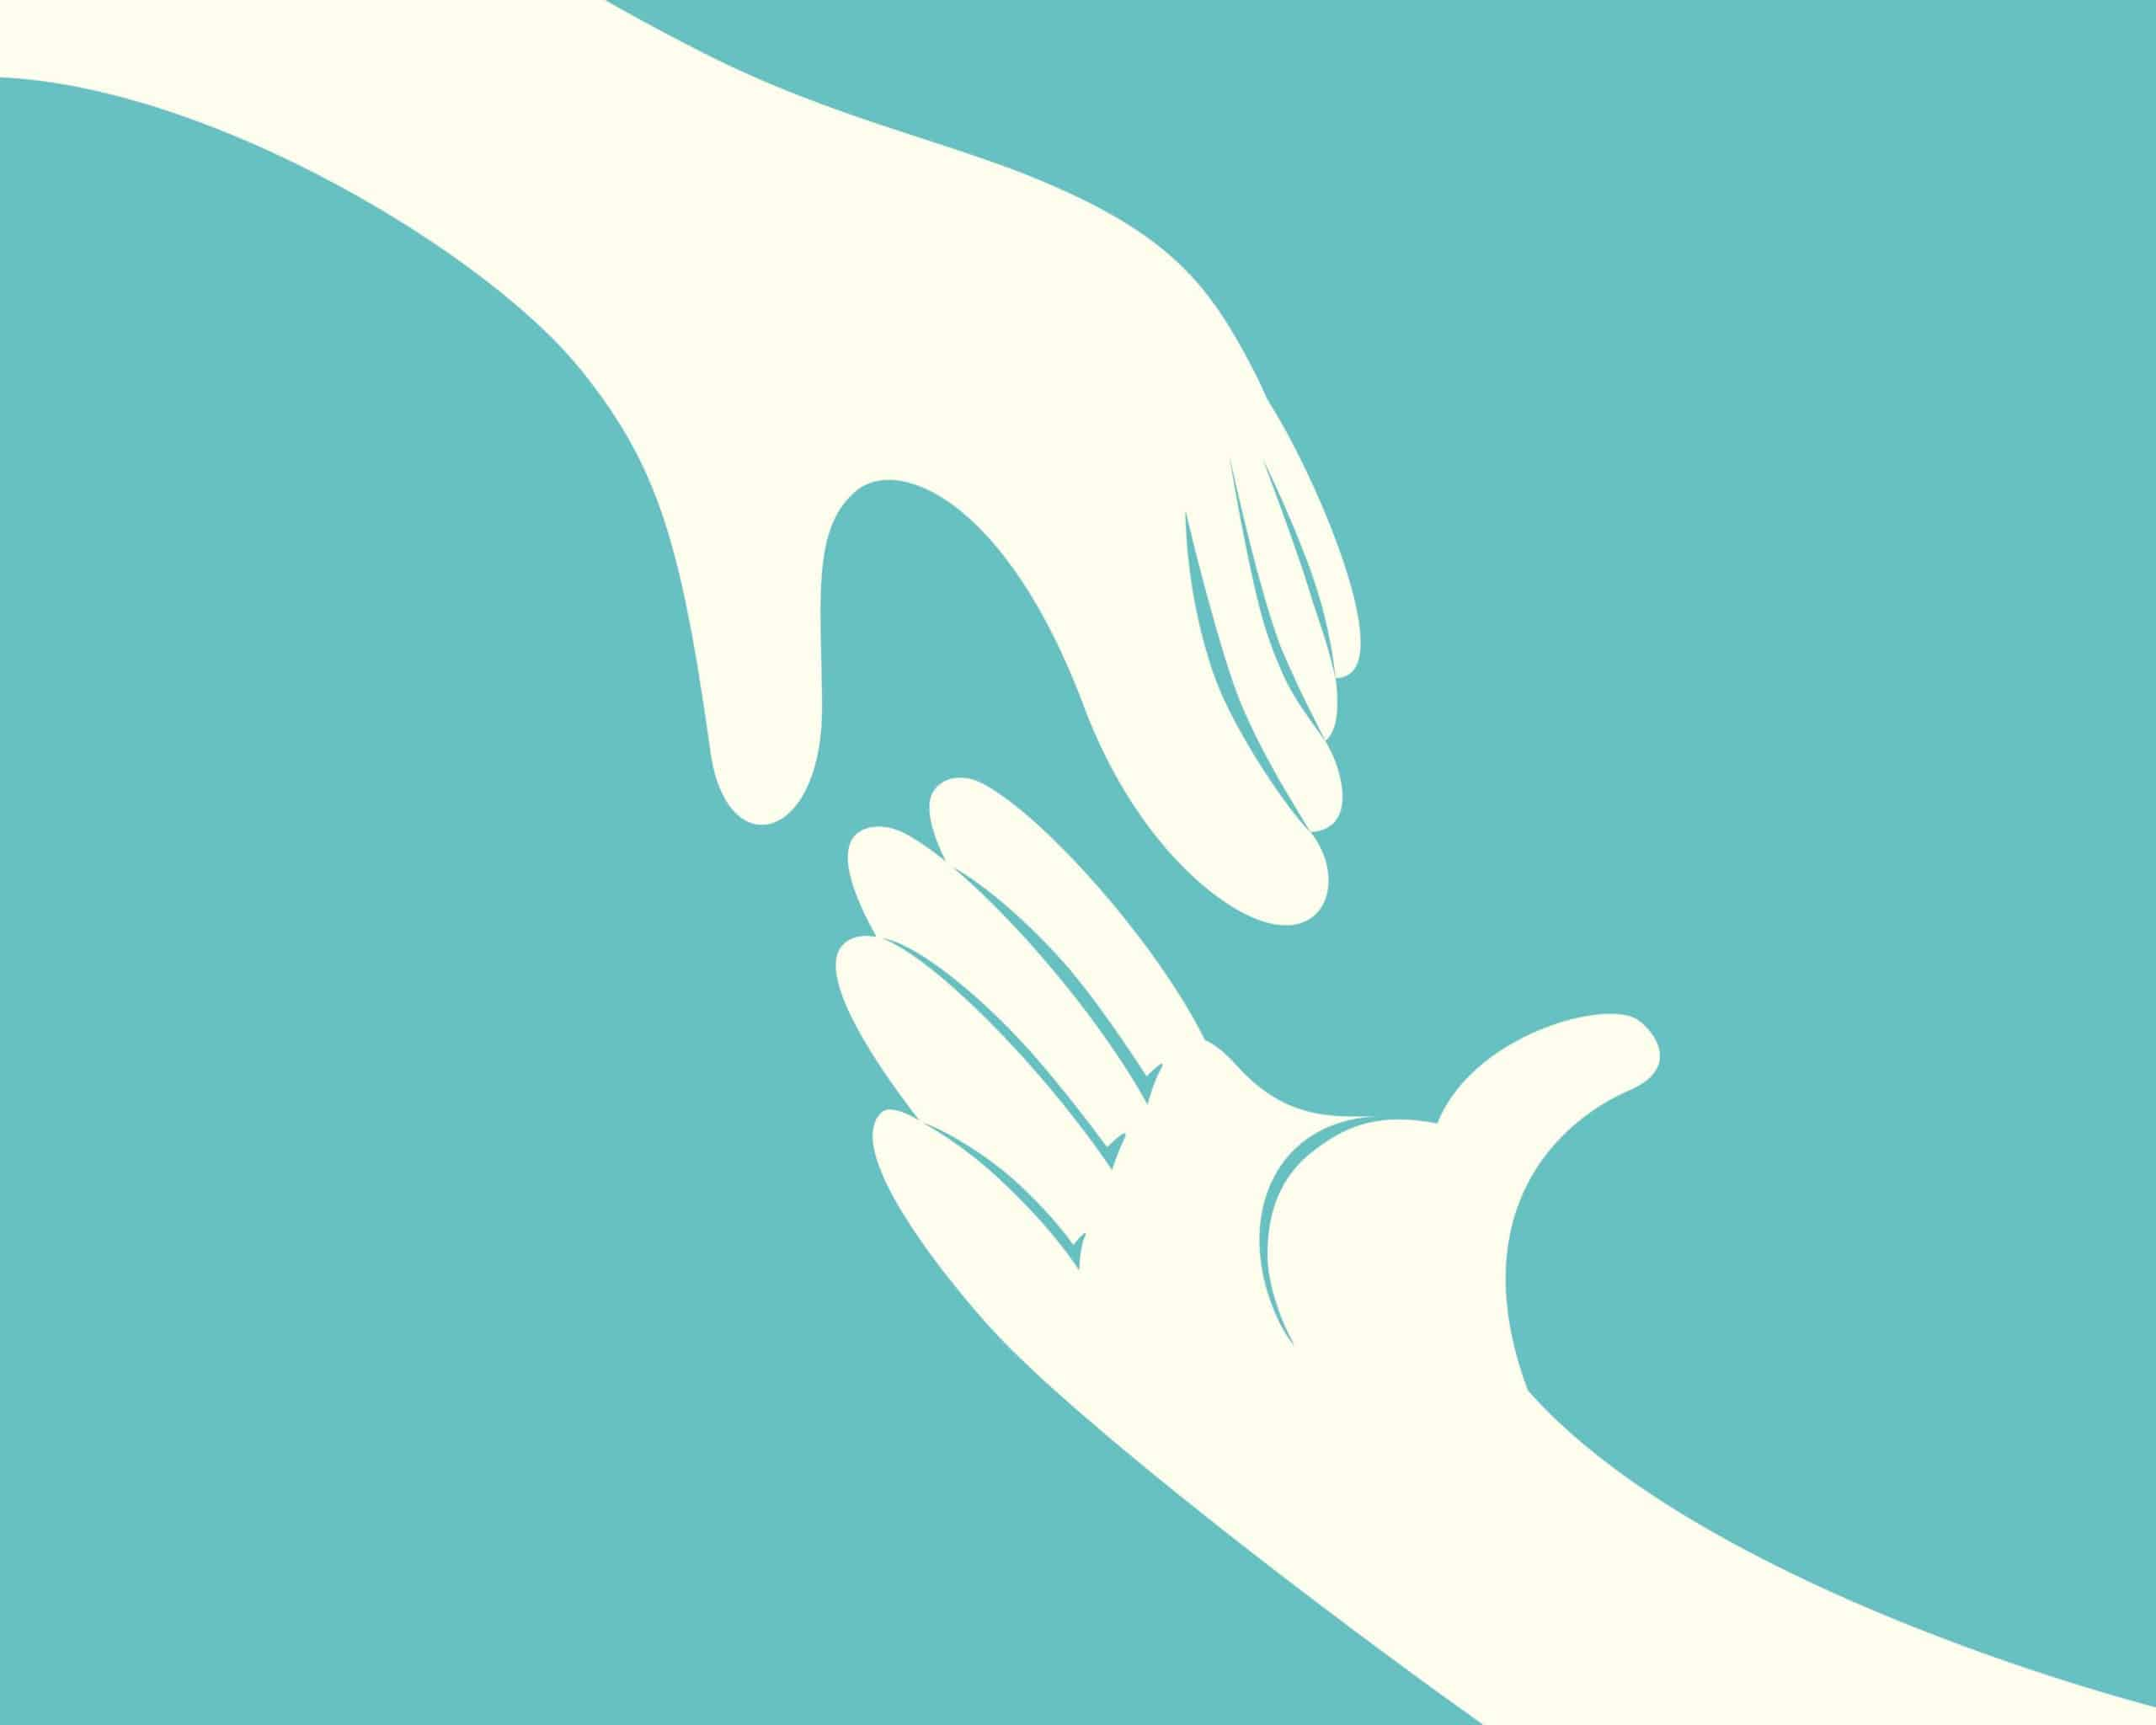 Two hands reaching toward moral courage